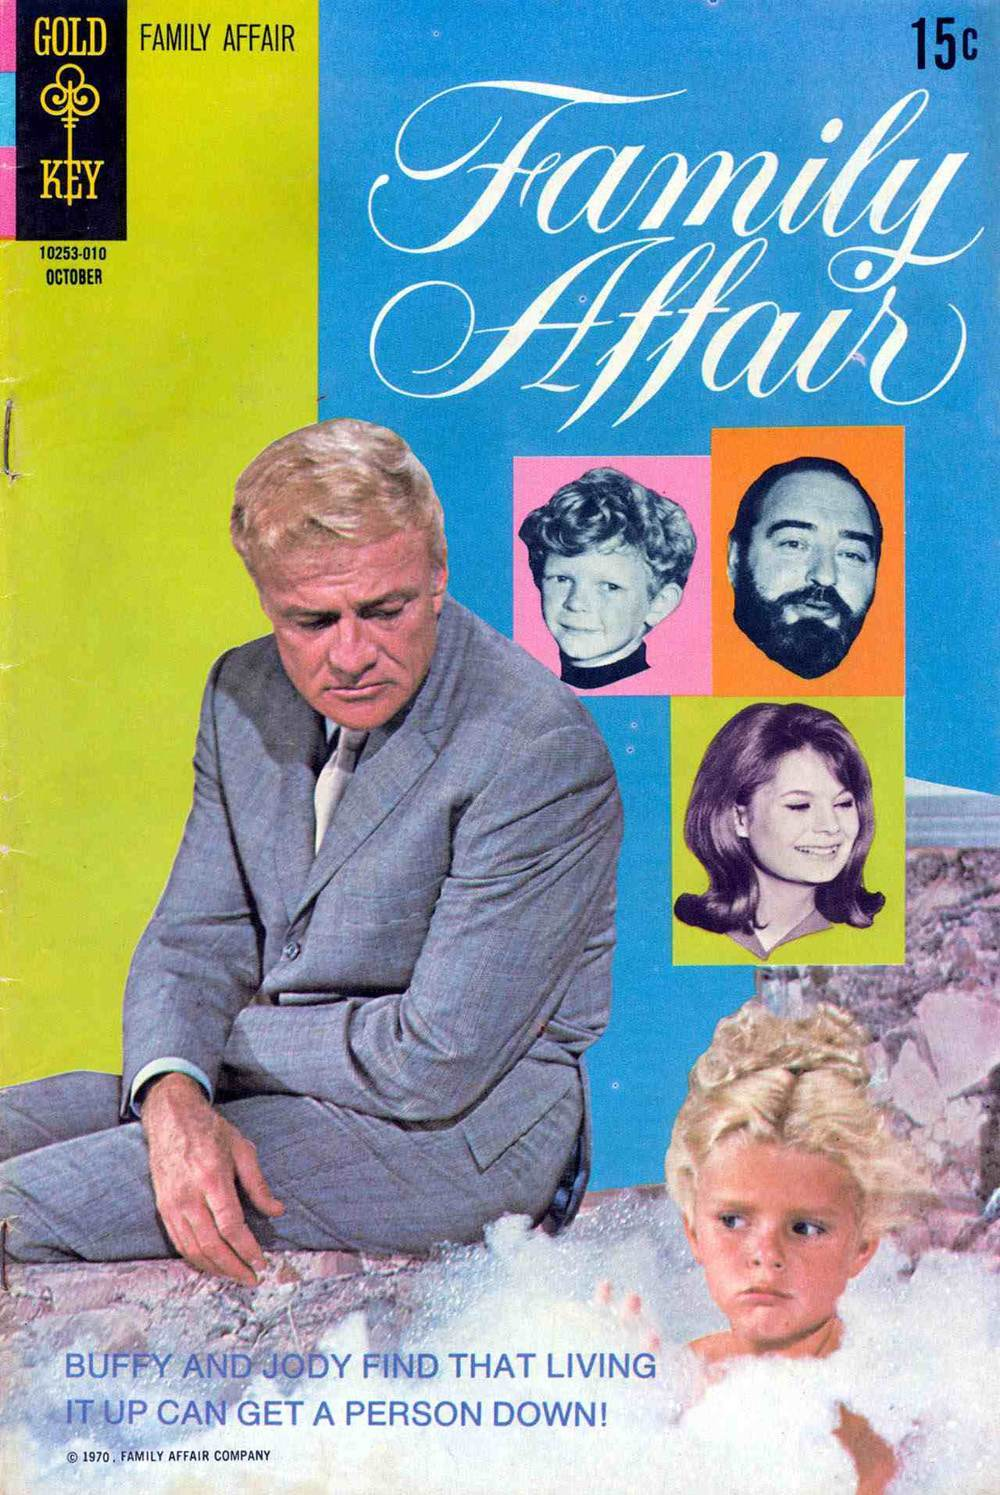 Family Affair, No. 4 (October 1970) Gold Key